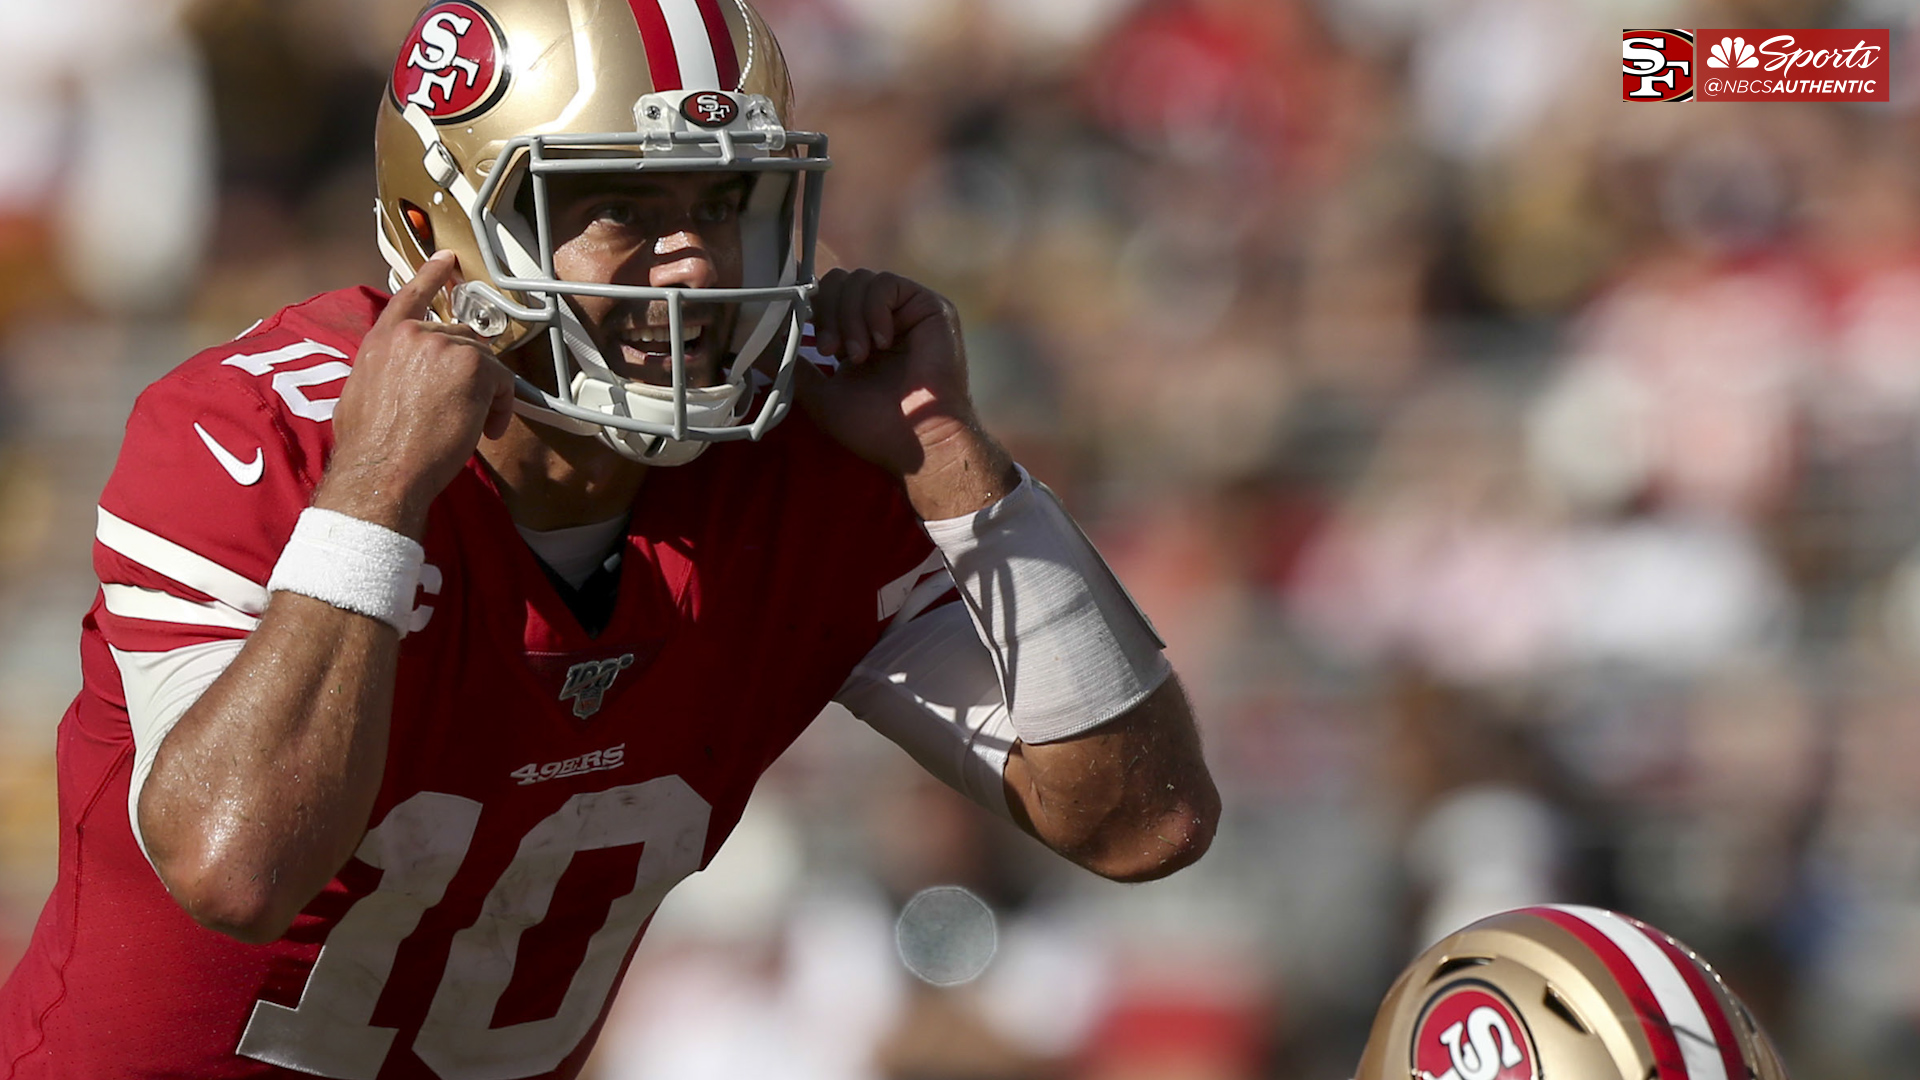 Kyle Shanahan details QB Jimmy G's poise in the pocket on third downs